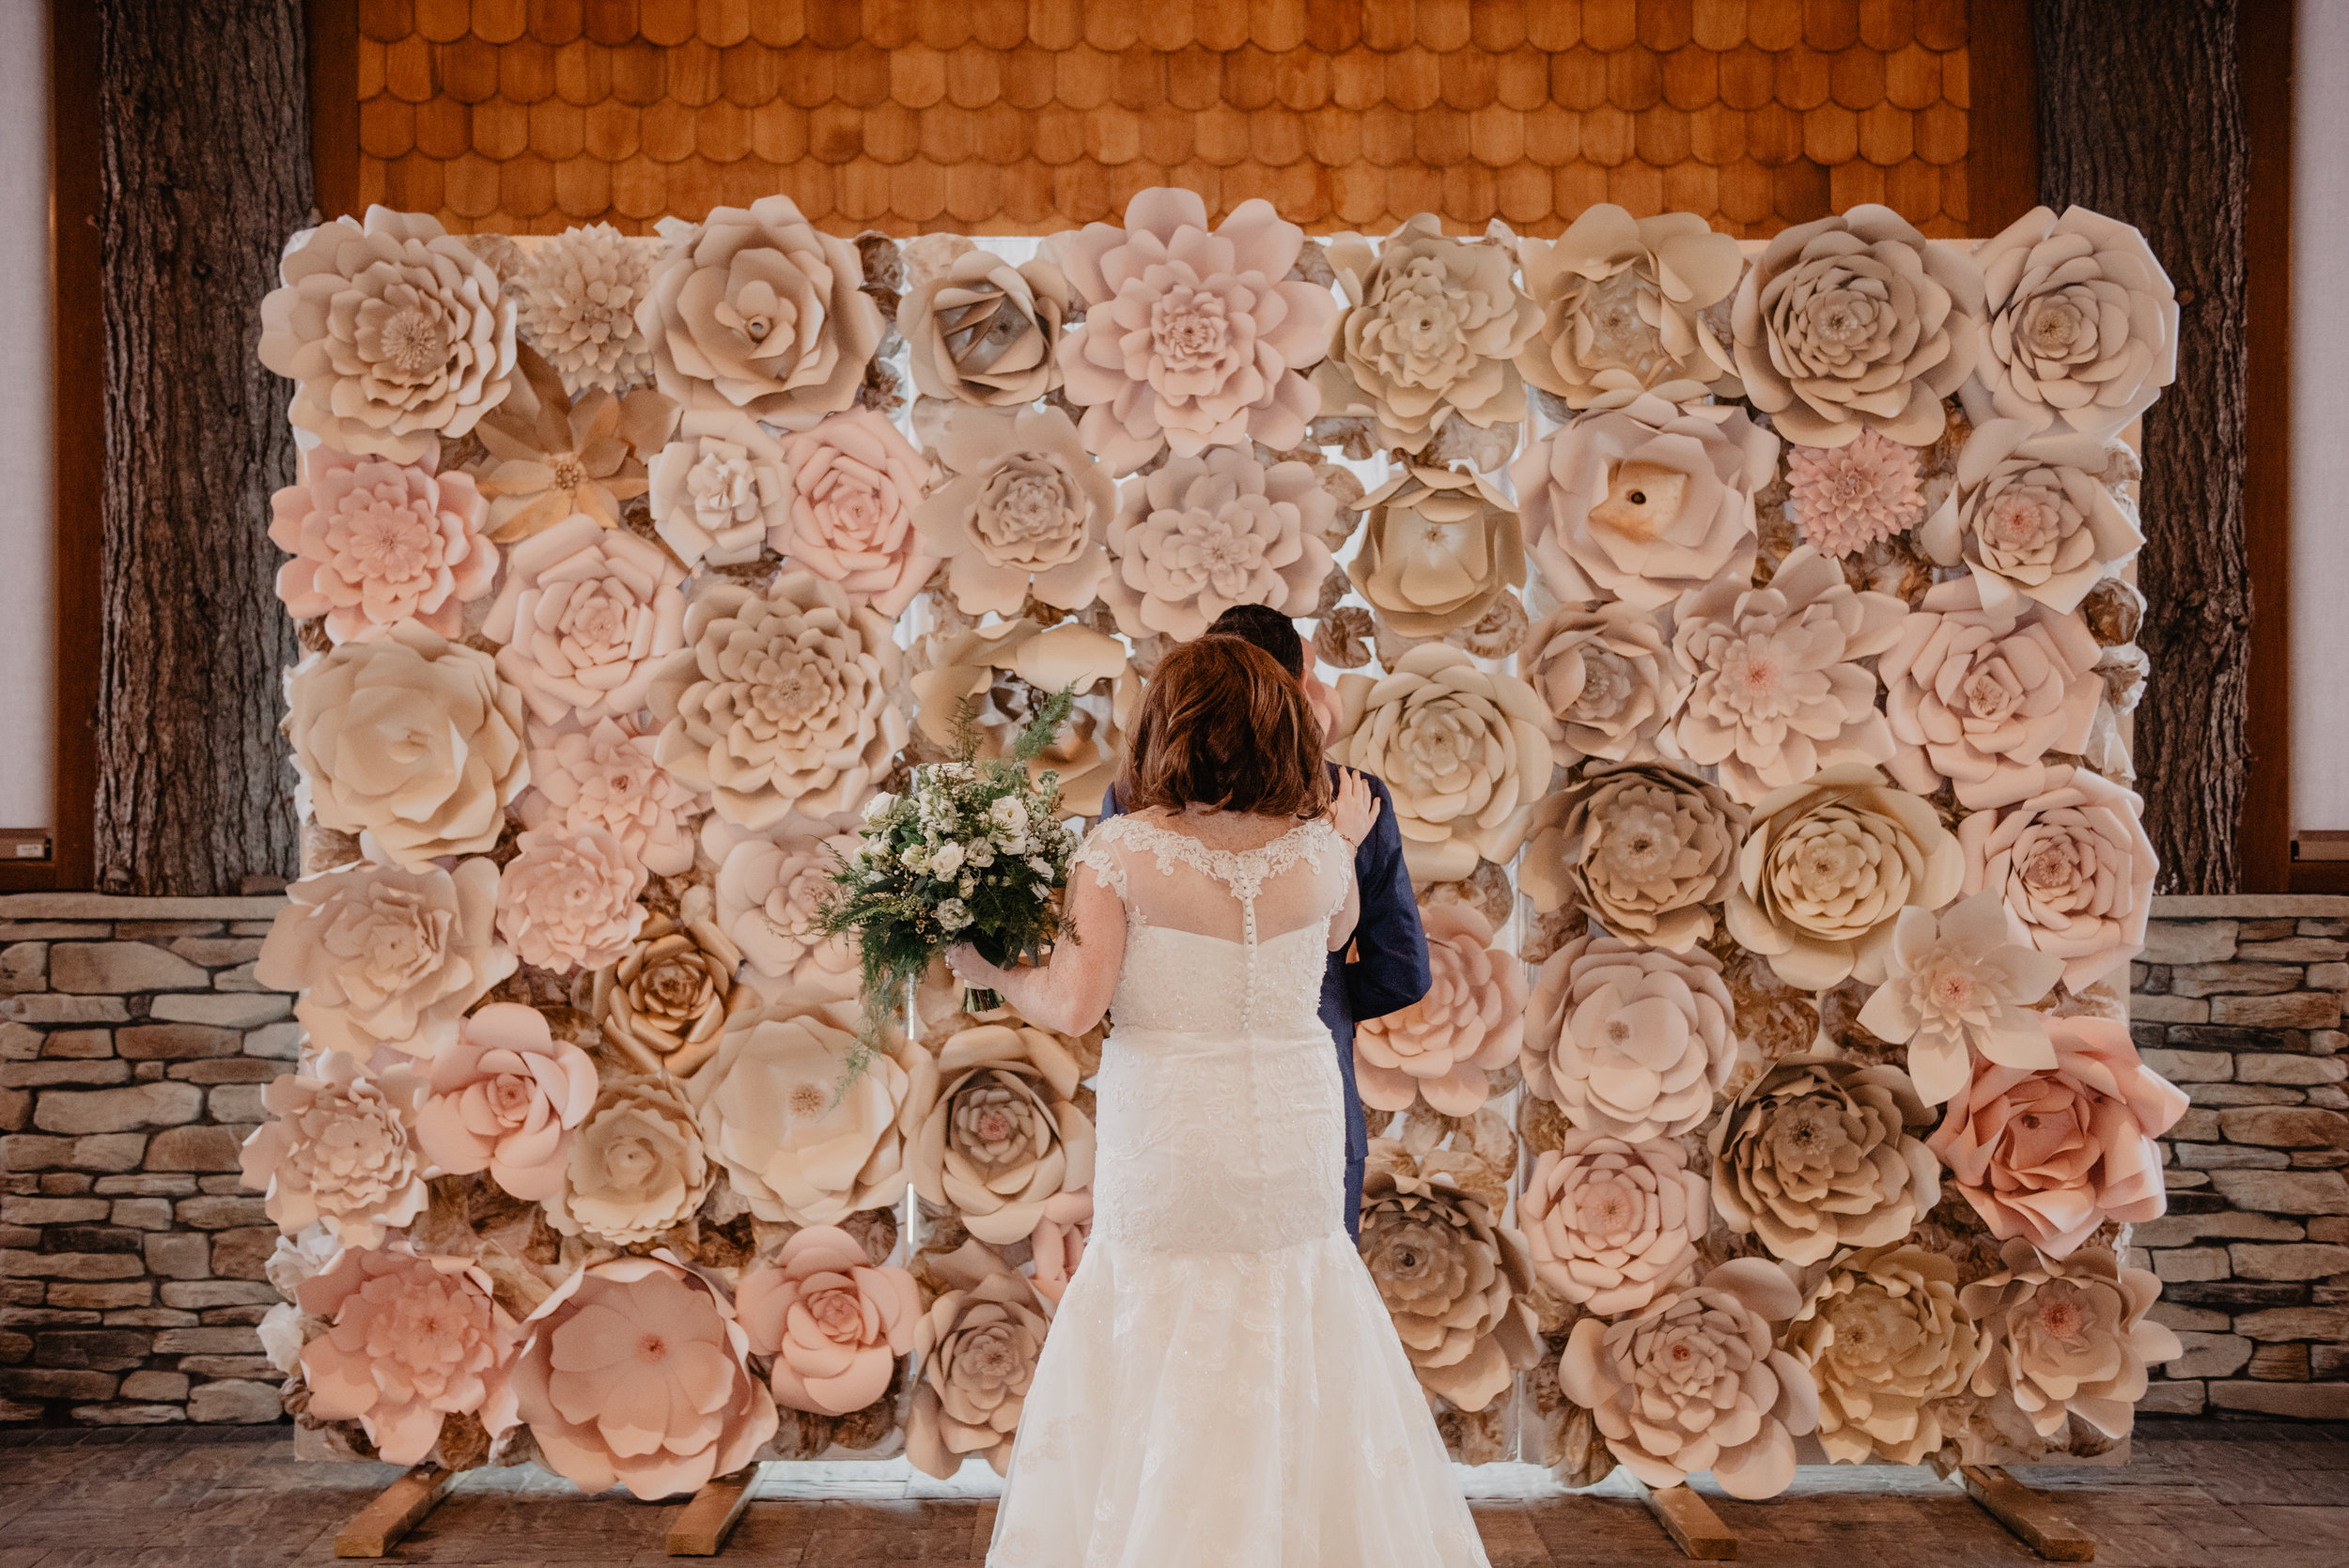 Flower wall by the bride, florals by AMK Floral